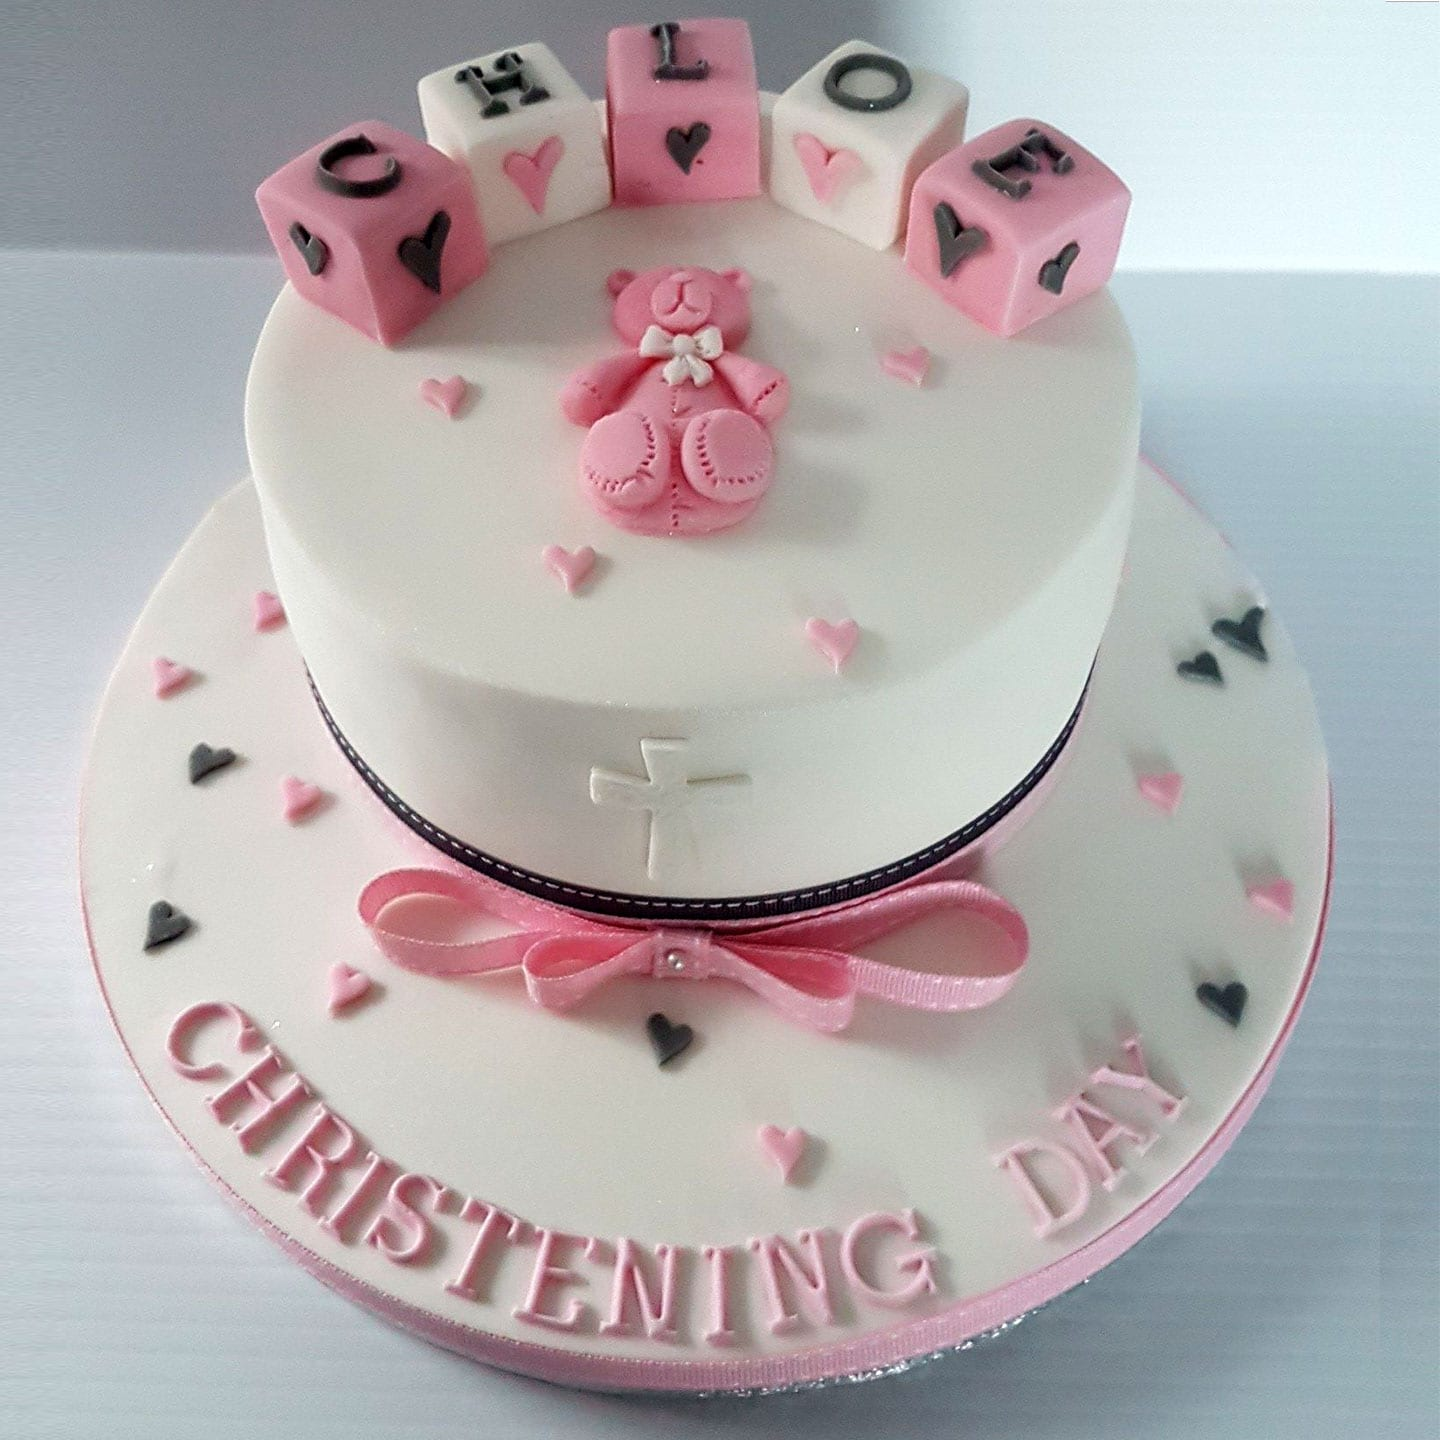 Christening Cake for baby Girl Design with Teddy Bear and Building Blocks